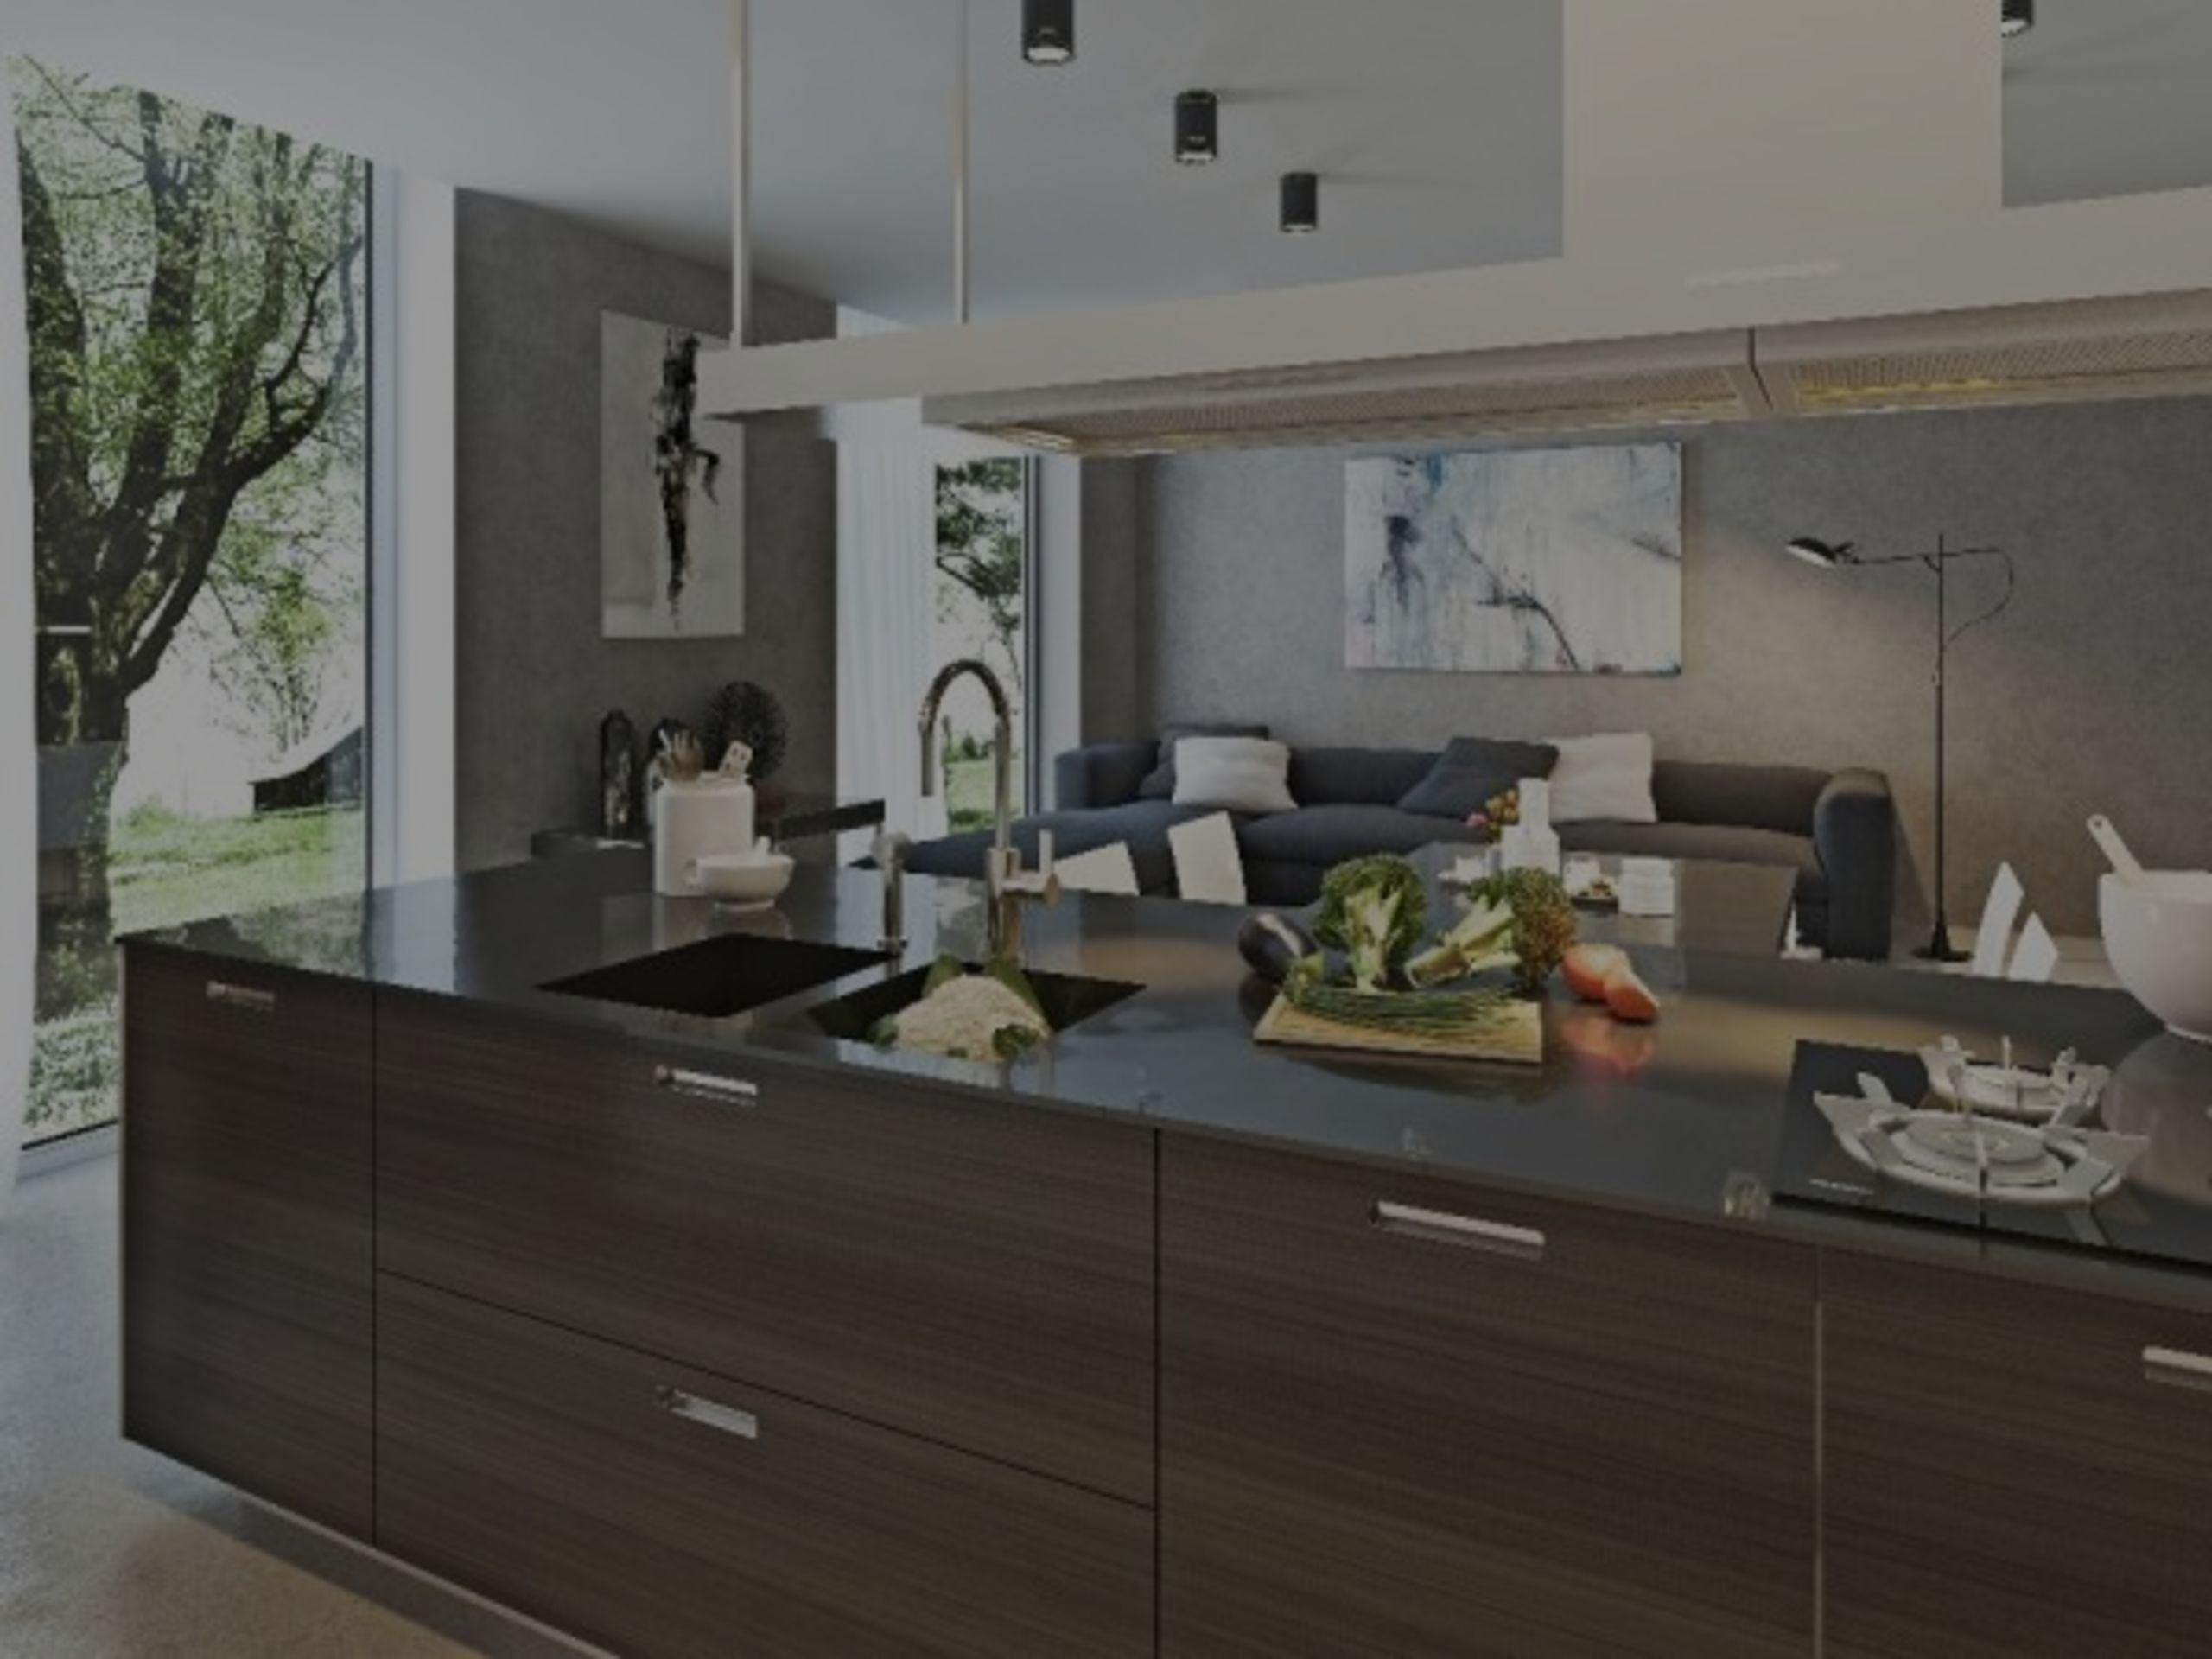 Reconsider Choices for Kitchen Remodel